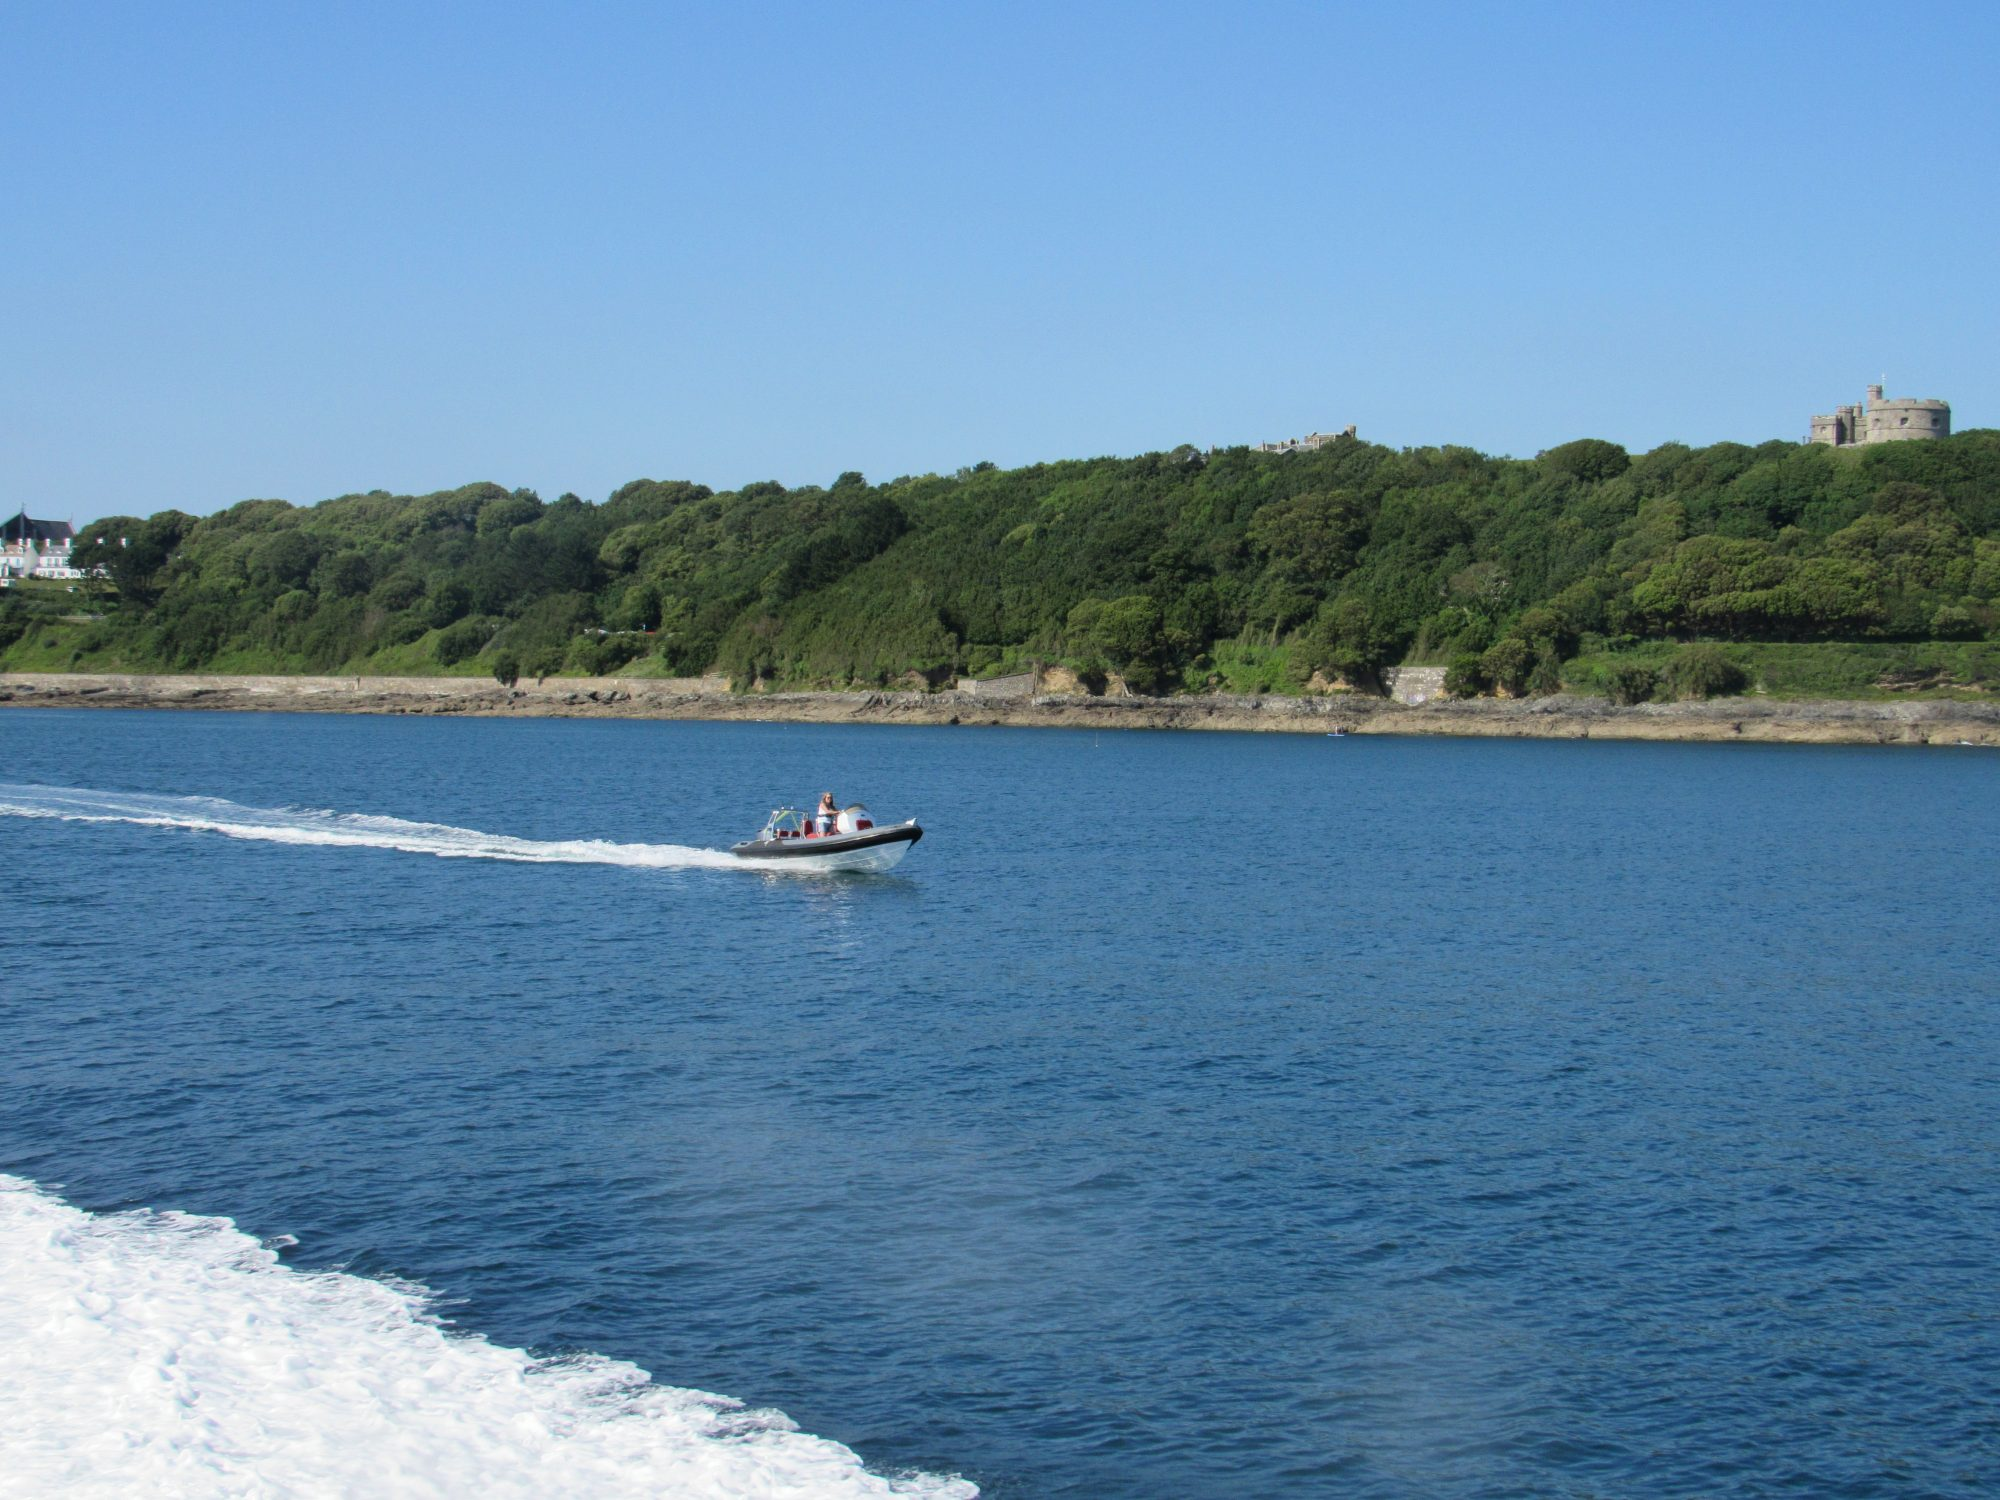 Falmouth Rib Charters on the water